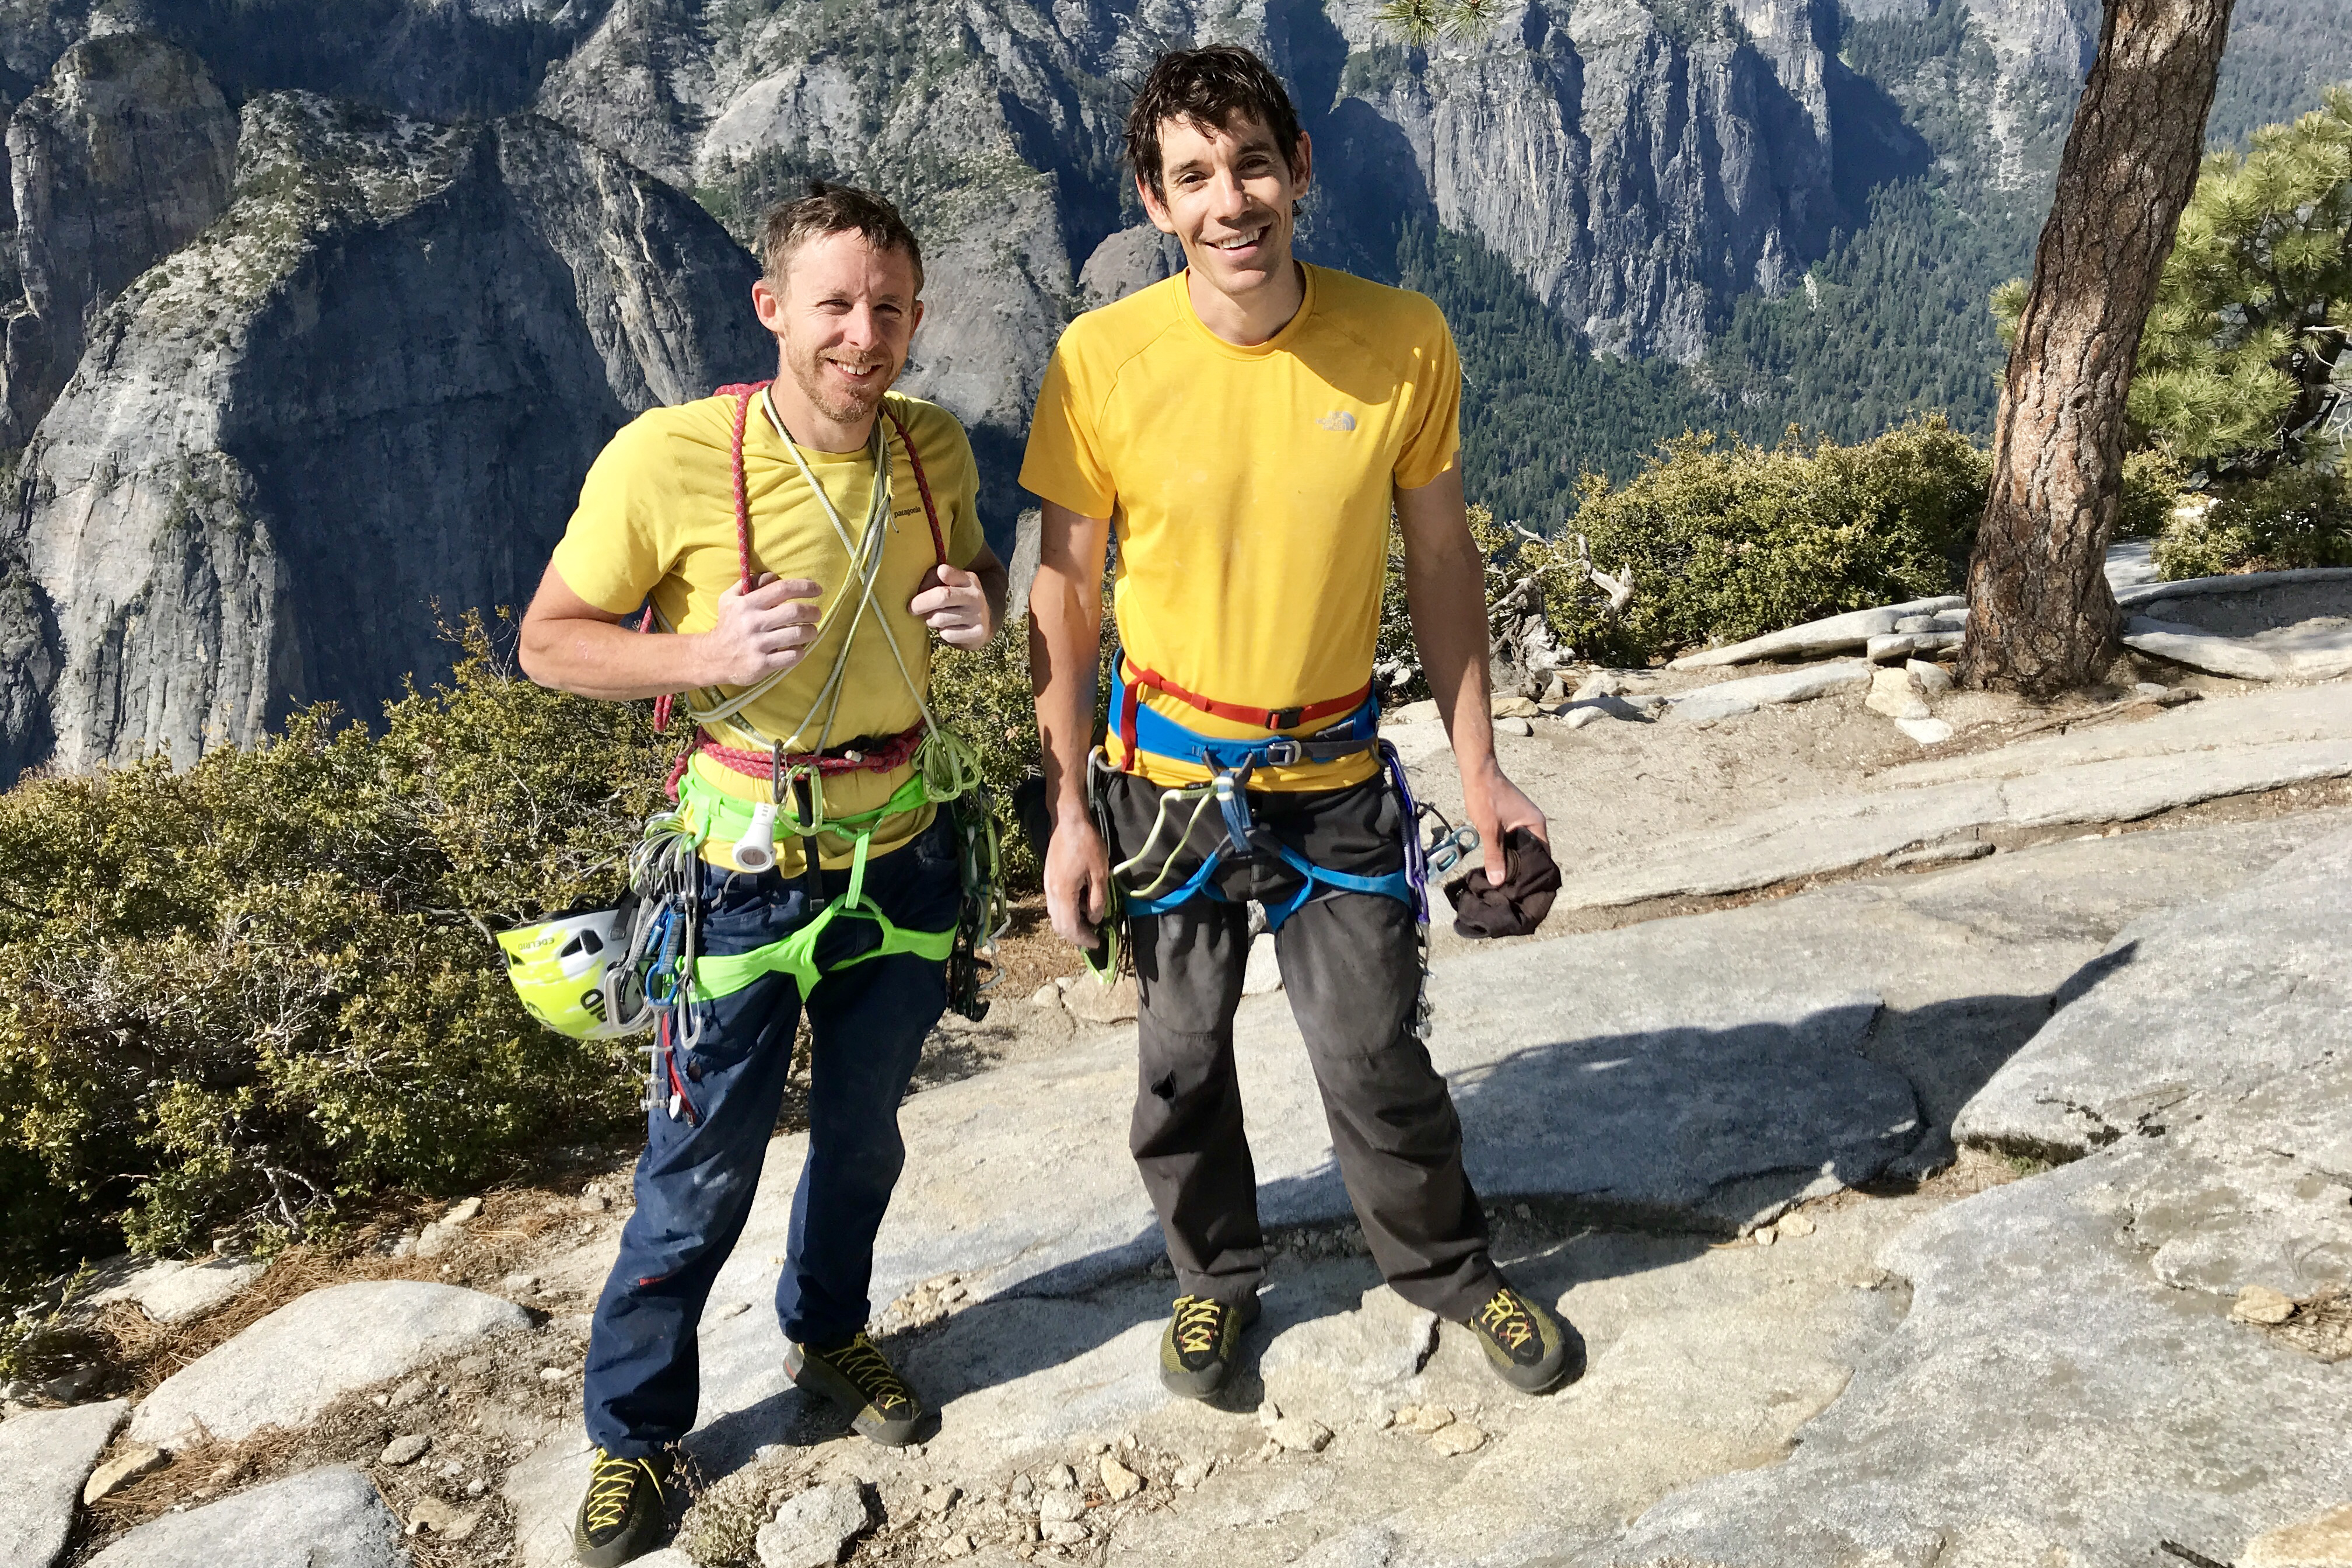 Tommy Caldwell and Alex Honnold on summit